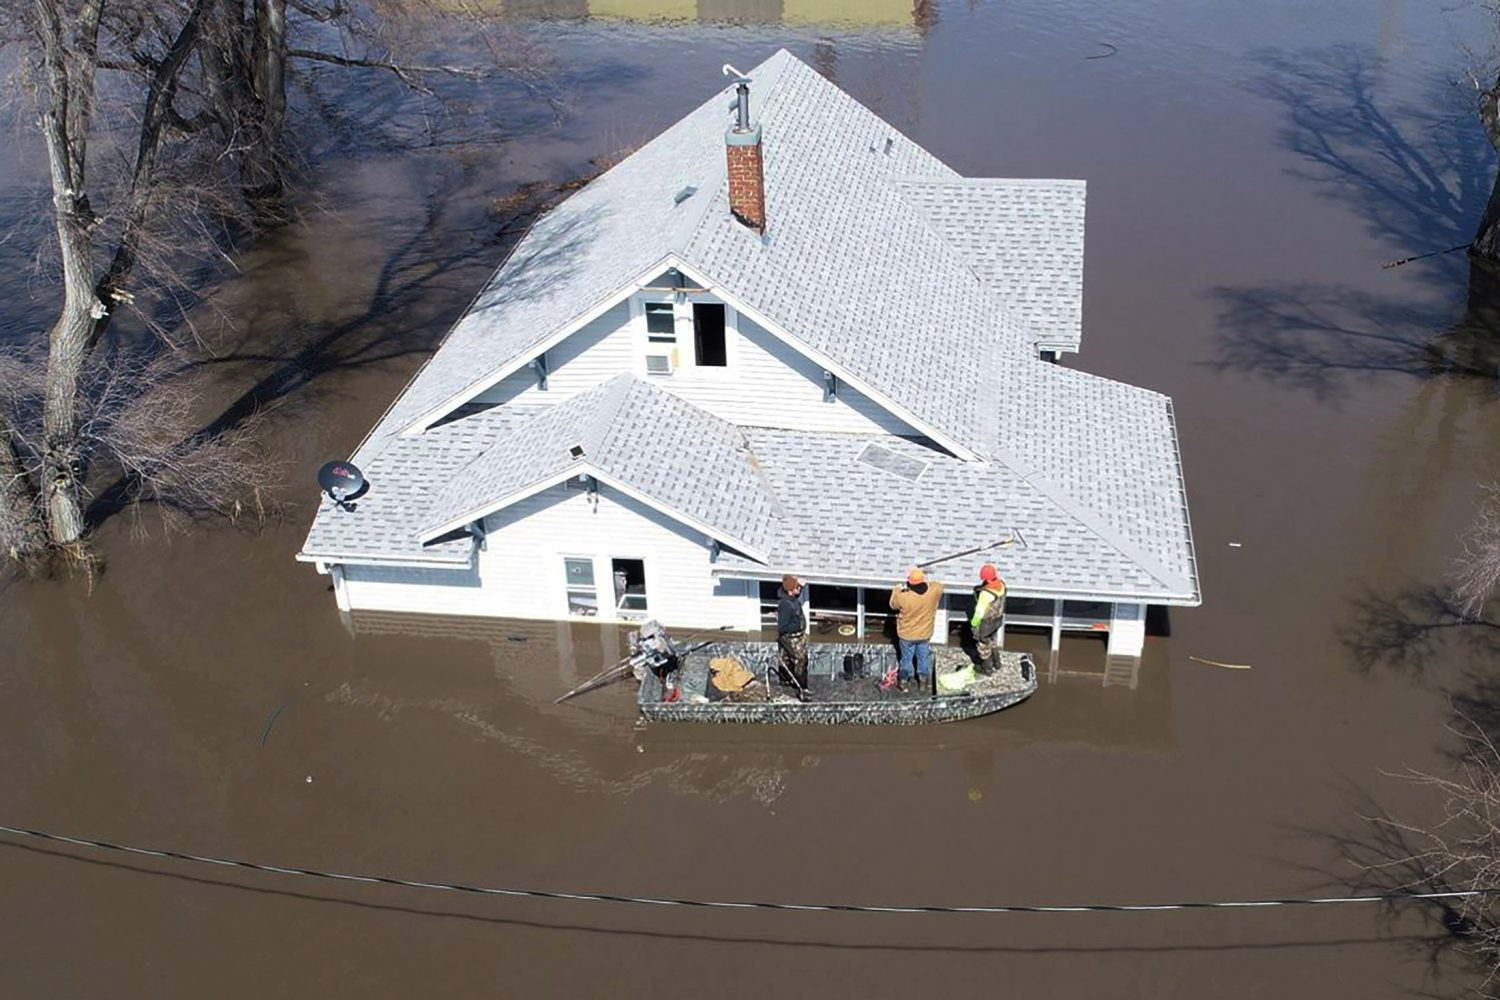 Lanni Bailey and a team from Muddy Paws Second Chance Rescue enter a flooded house to pull out several cats during the flooding of the Missouri River near Glenwood, Iowa, U.S. March 18, 2019. Passport Aerial Photography/Handout via REUTERS